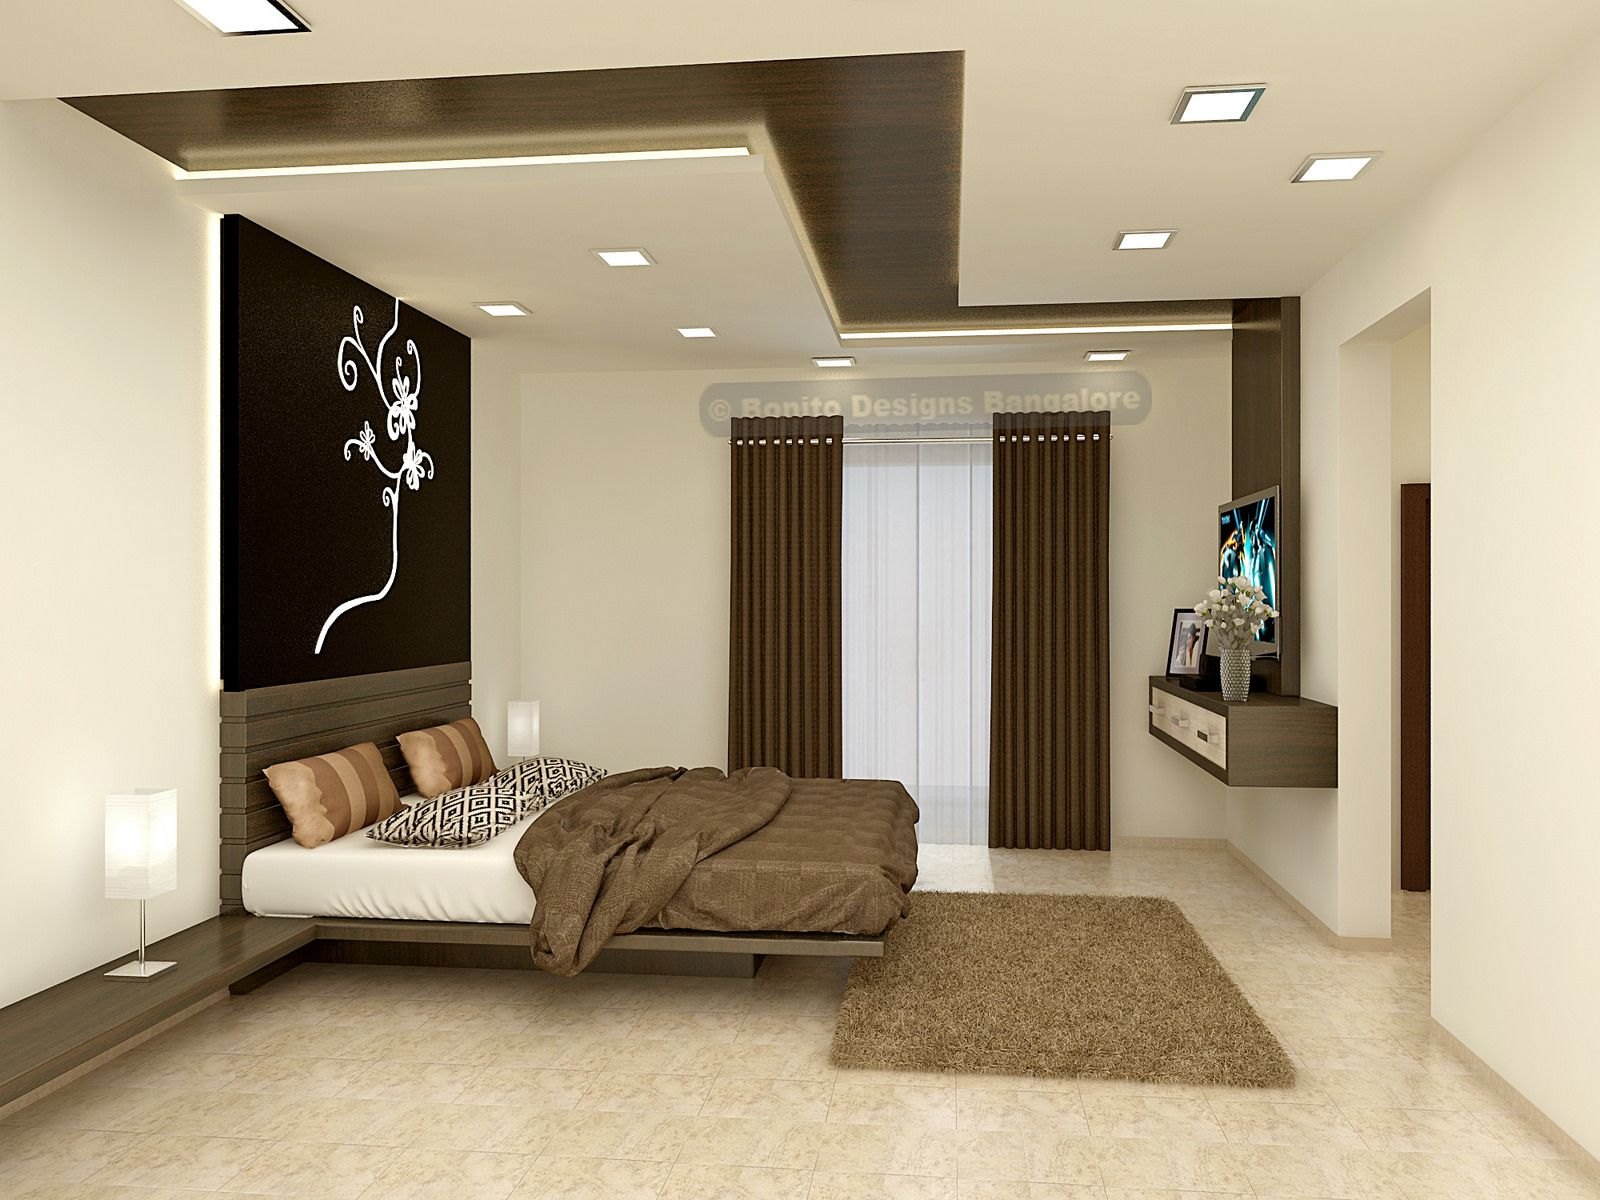 Sandepmbr 1 Bedroom False Ceiling Design Ceiling Design Living